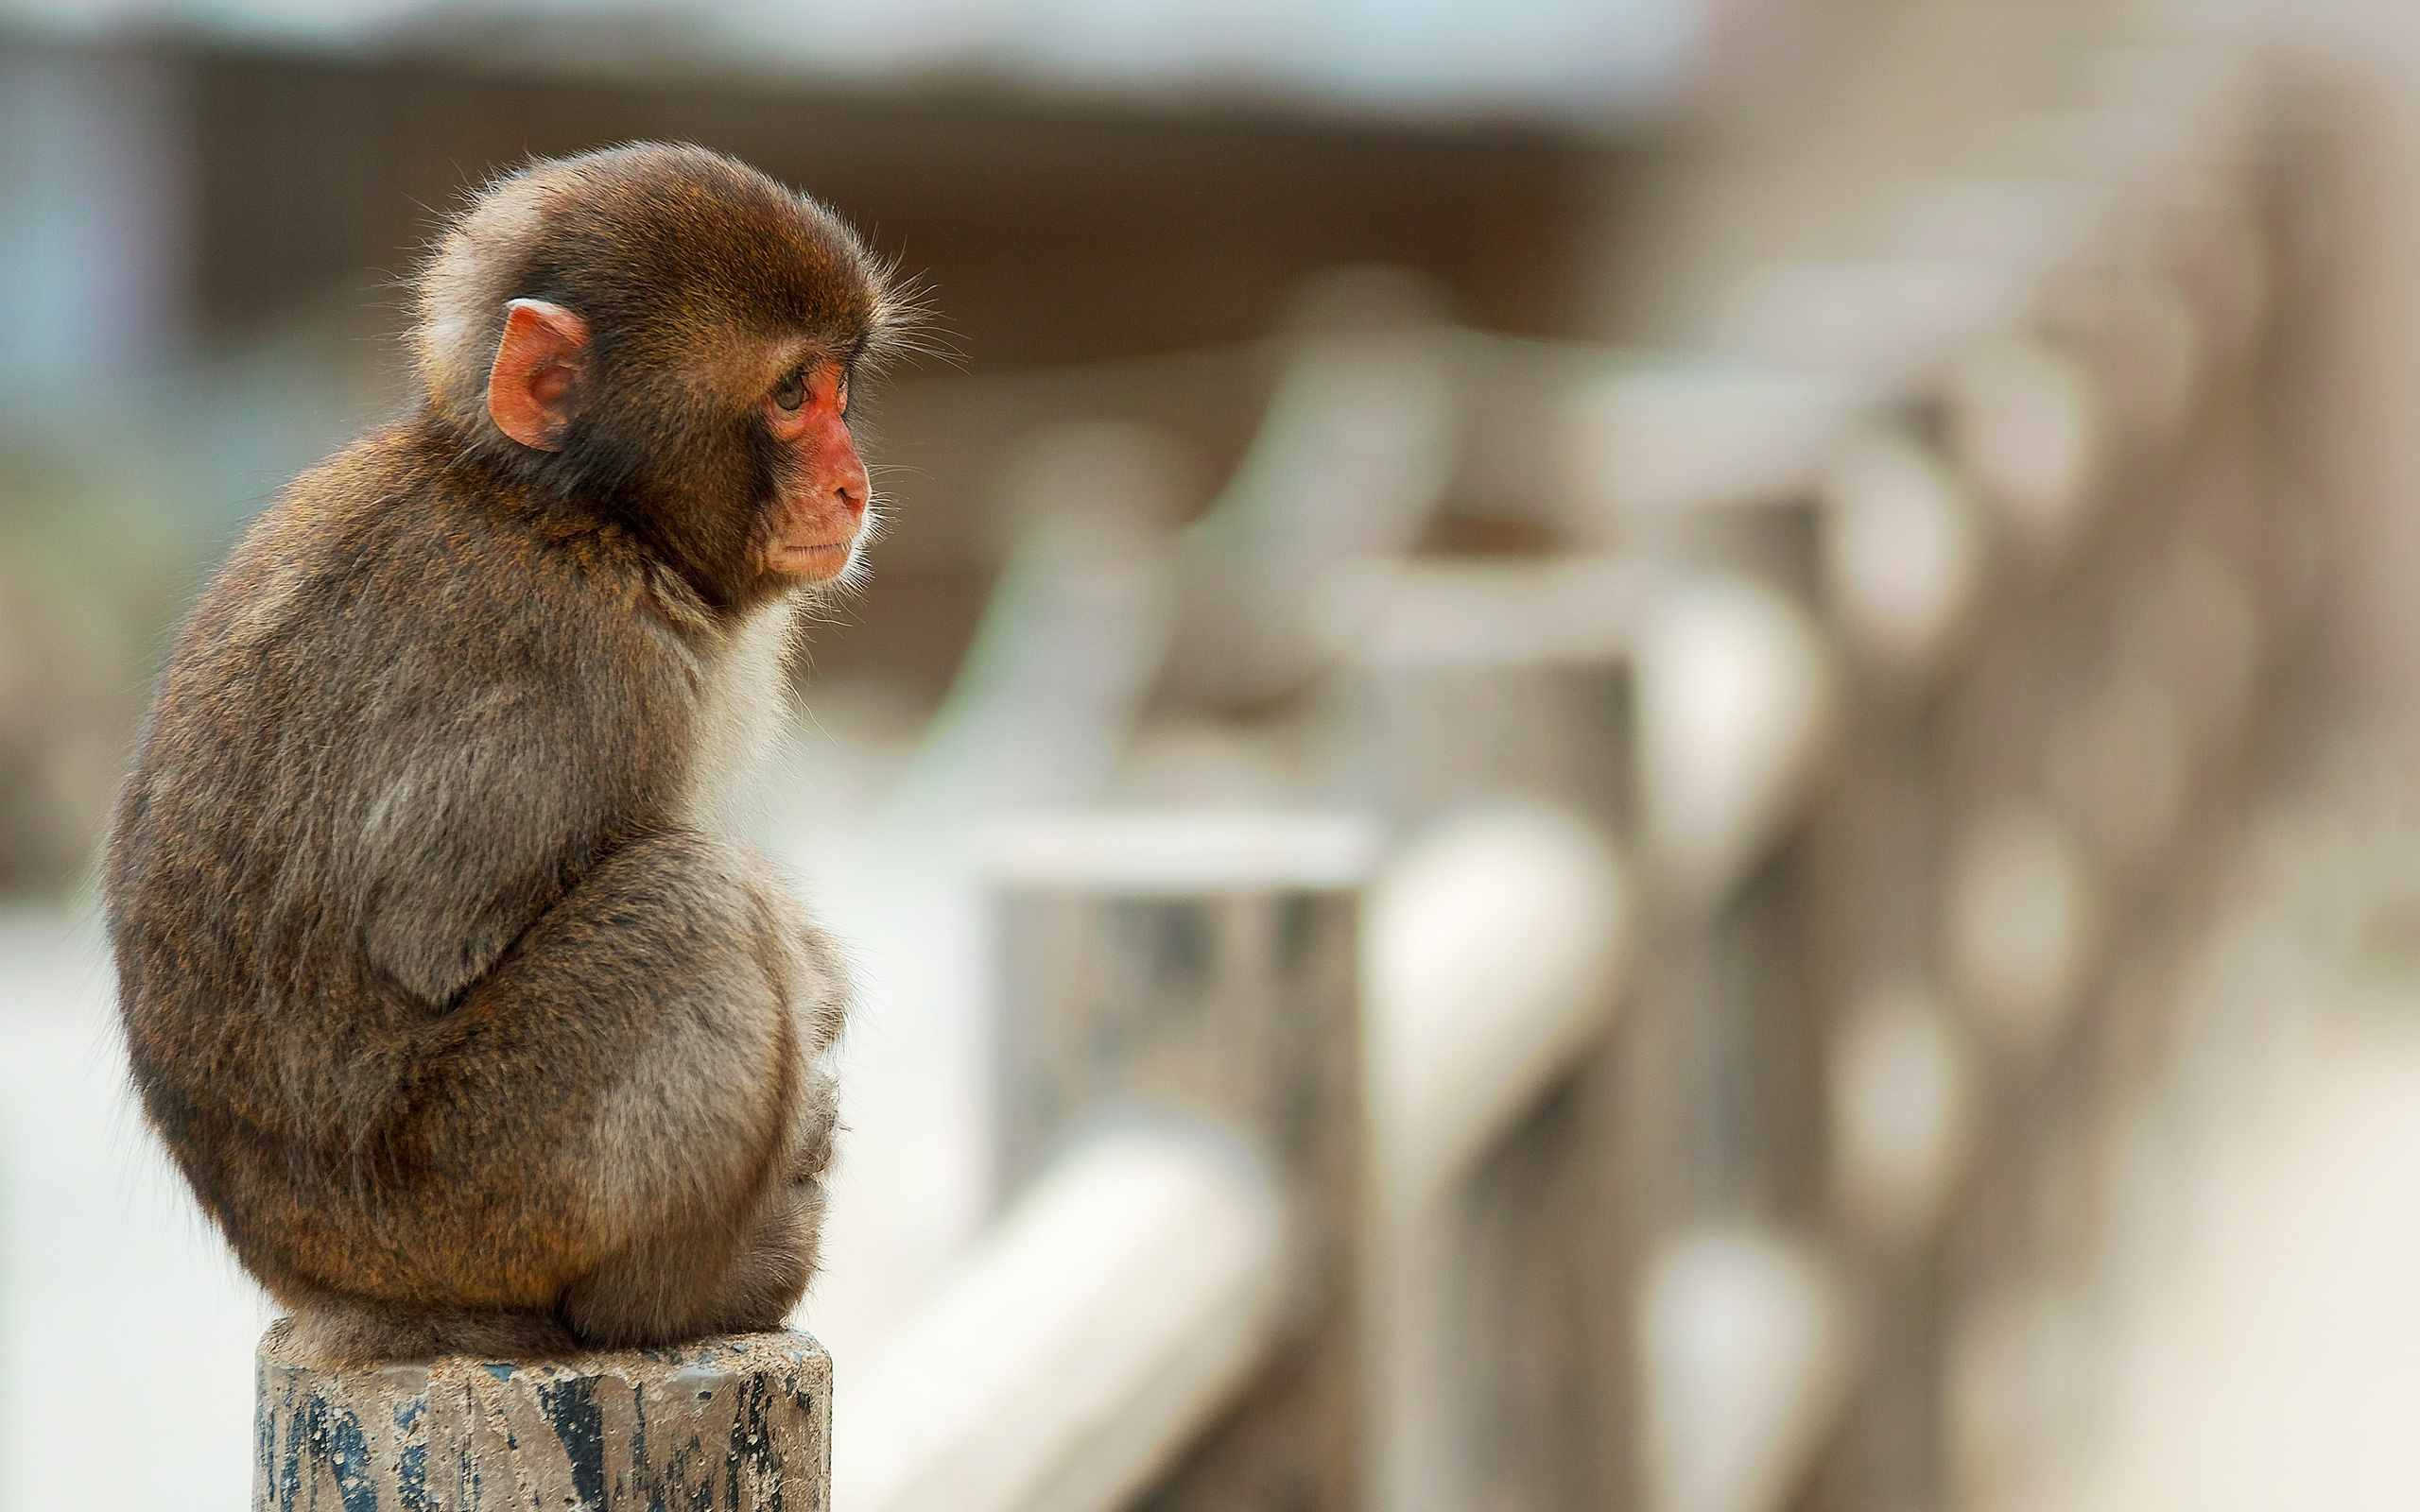 Iphone 5s Beach Wallpaper Wallpaper Macaque Monkey Sitting On Stone Fence 2560x1600